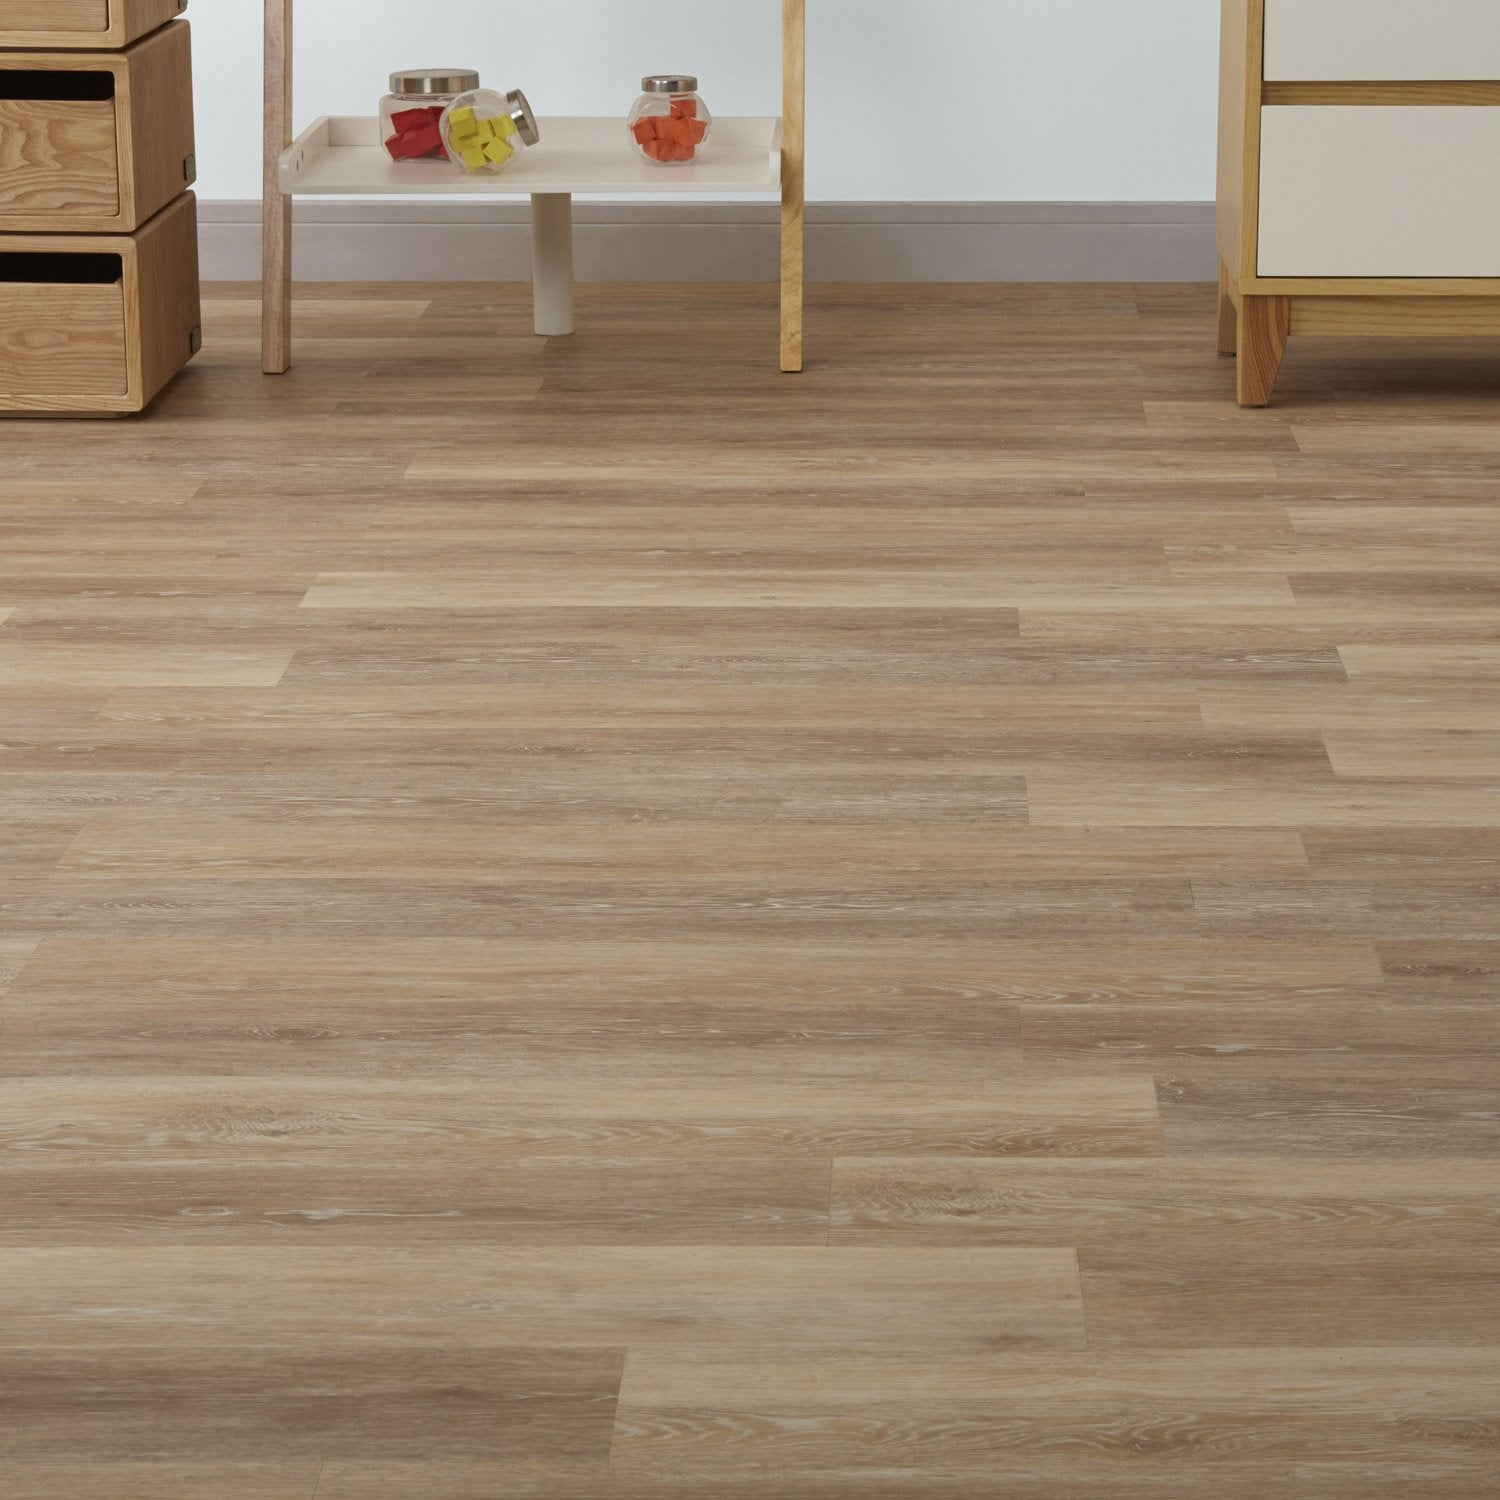 Dalles Clipsables Saint Maclou artens parquet pvc - construction et immobilier